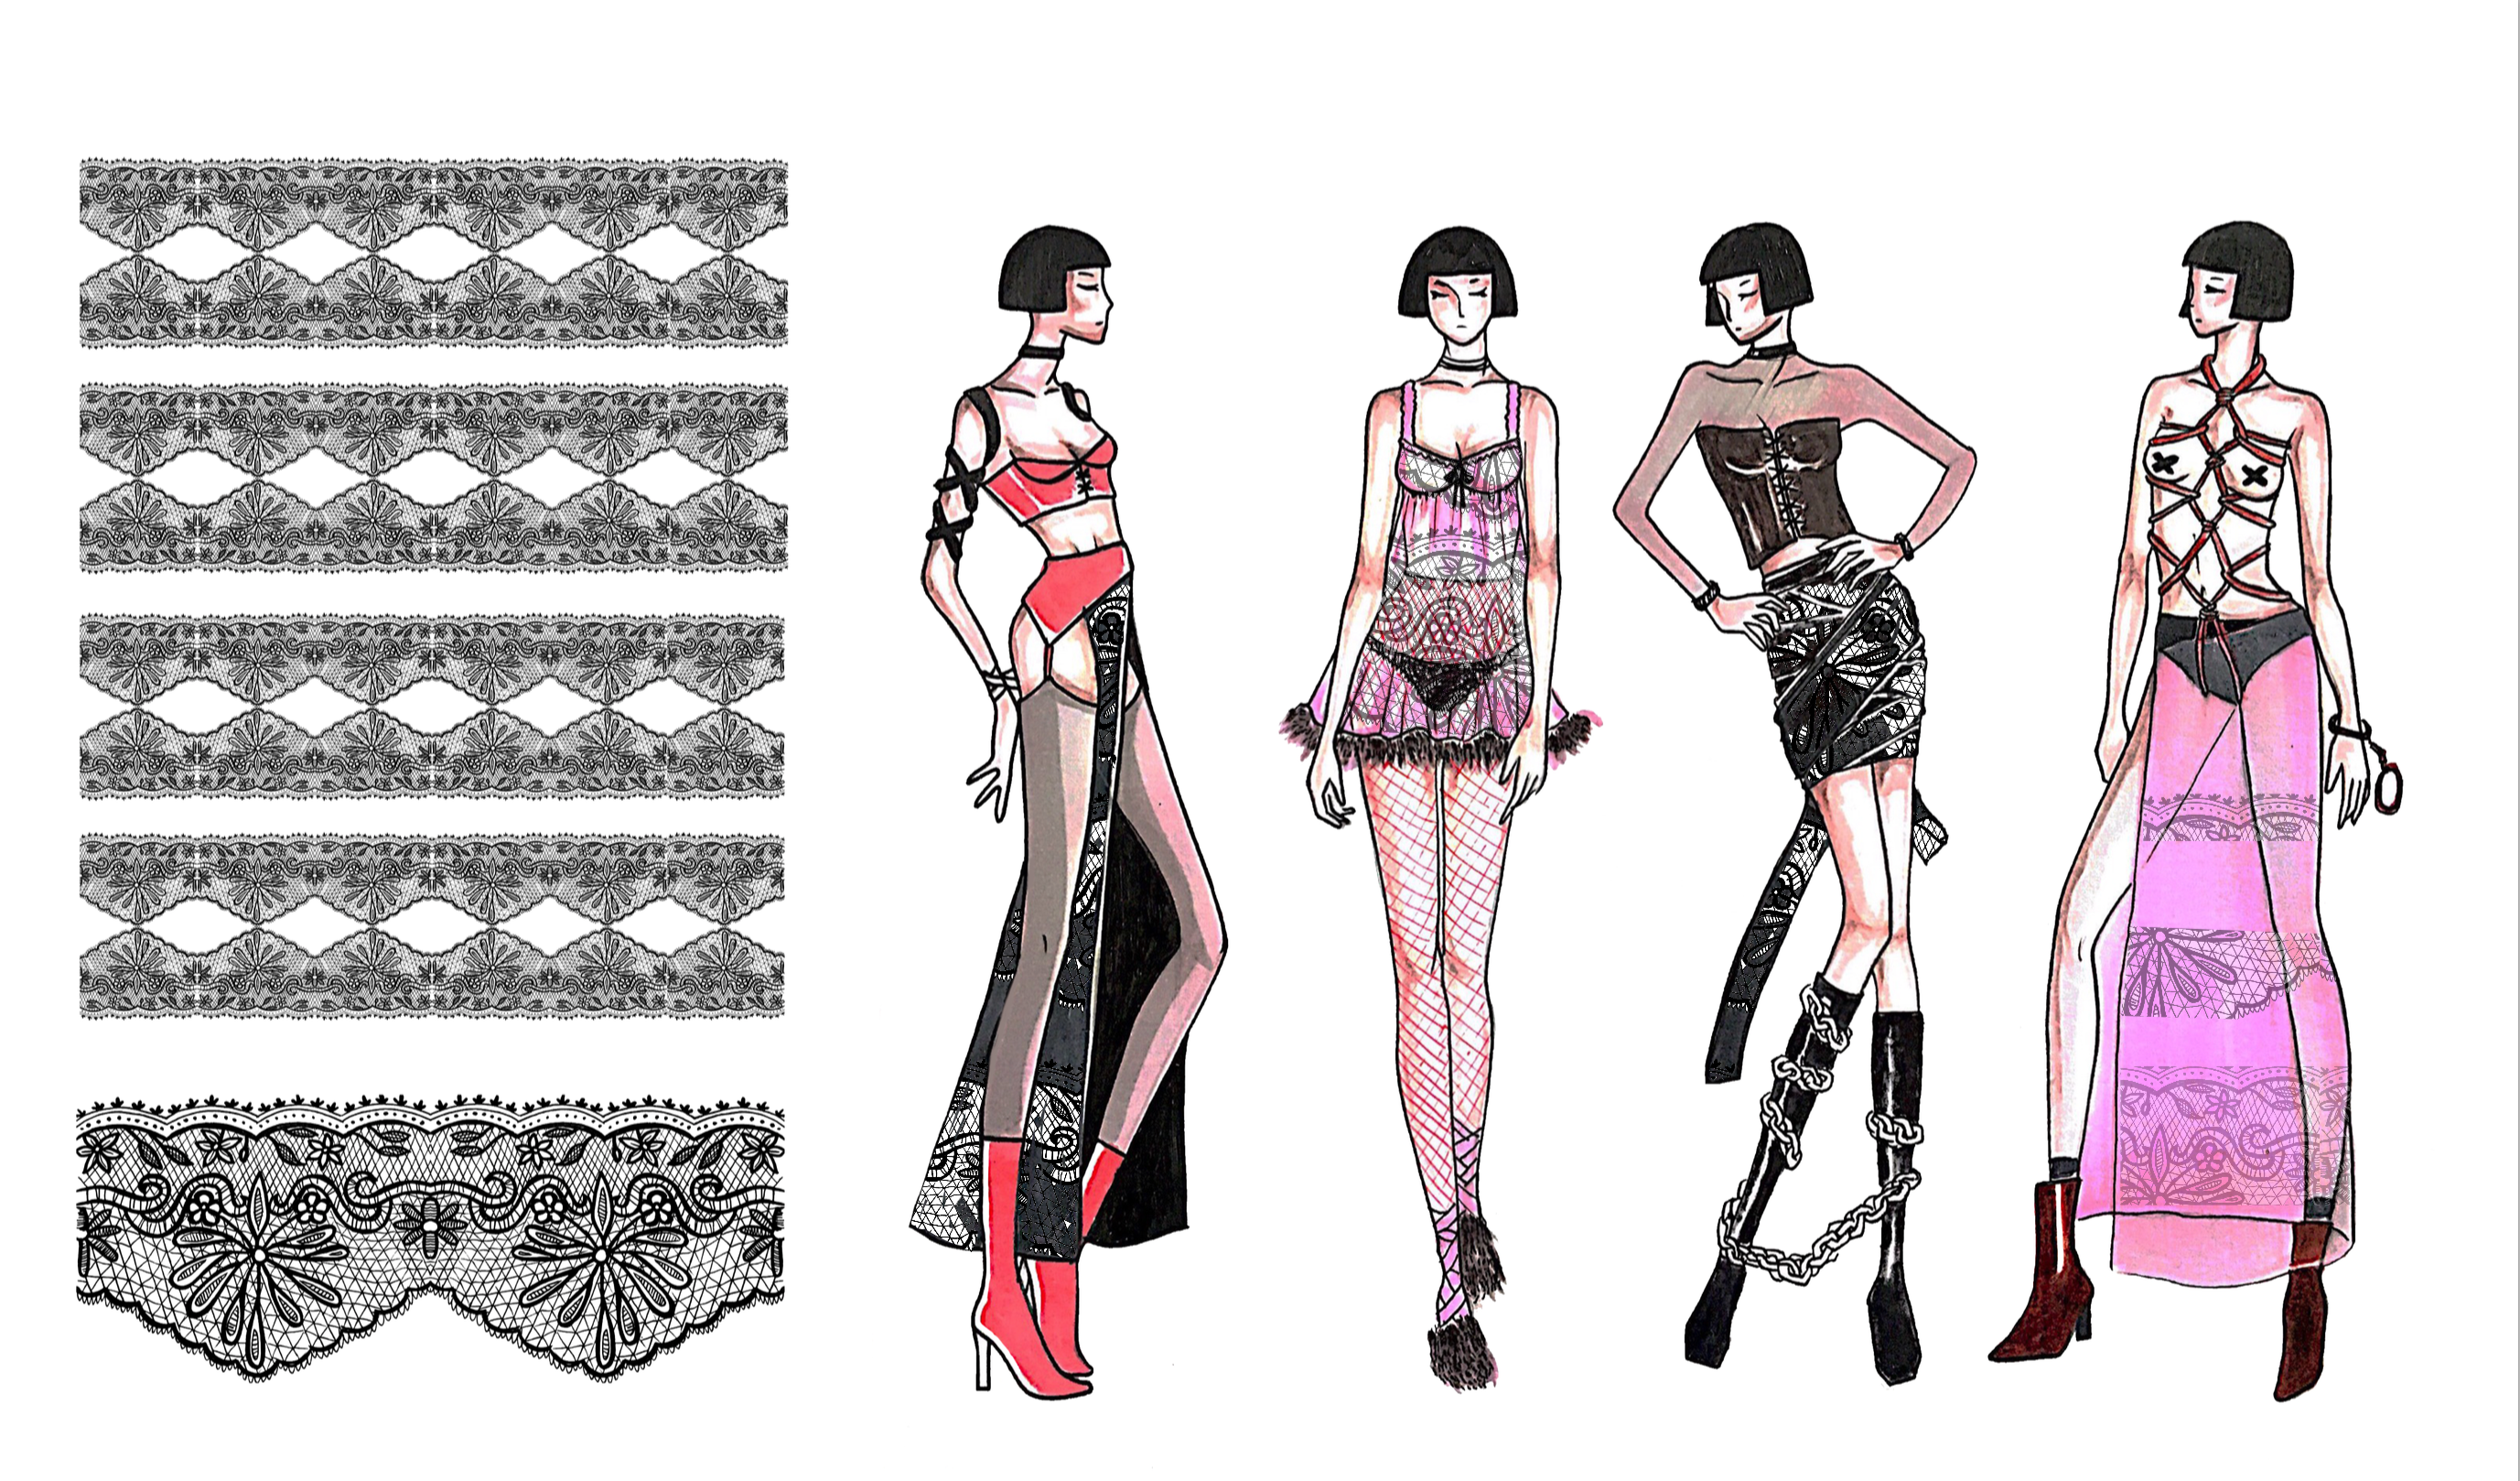 LP WK 8/ Project Submission & Reflection Collection Development (Illustrations & Surface Design)